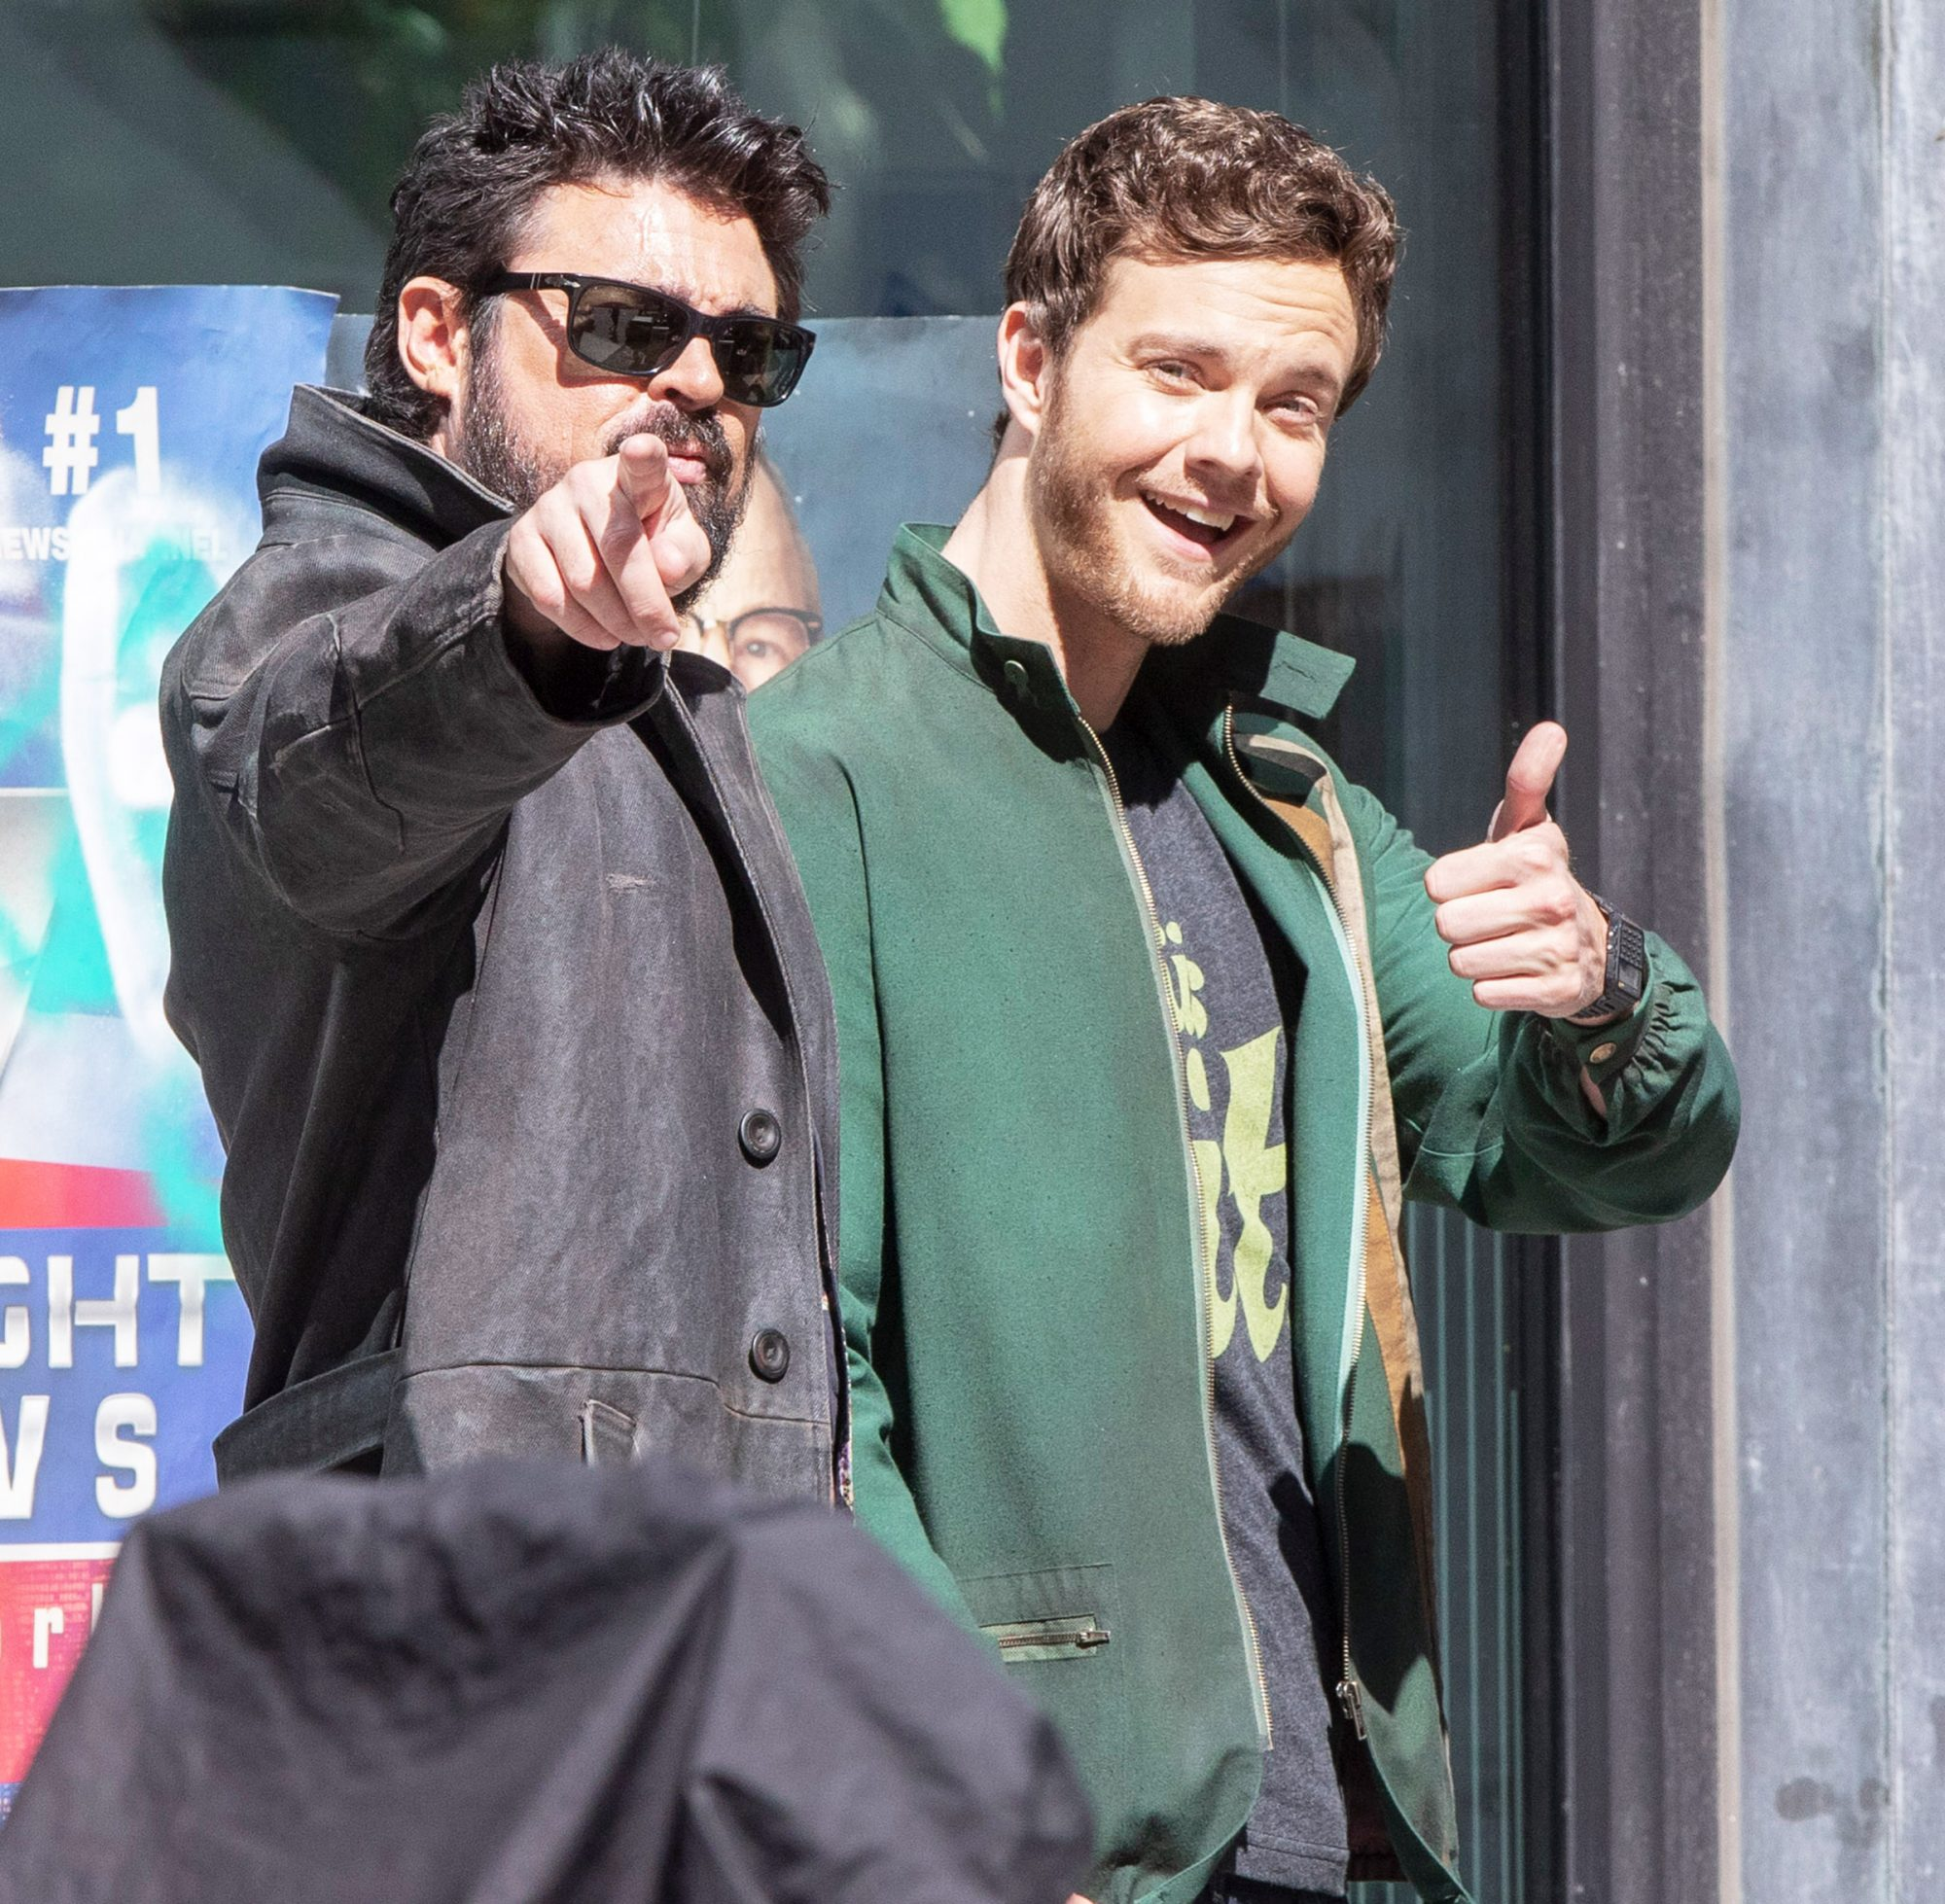 Karl Urban and Jack Quaid are Spotted Filming 'The Boys' in Toronto, Canada.